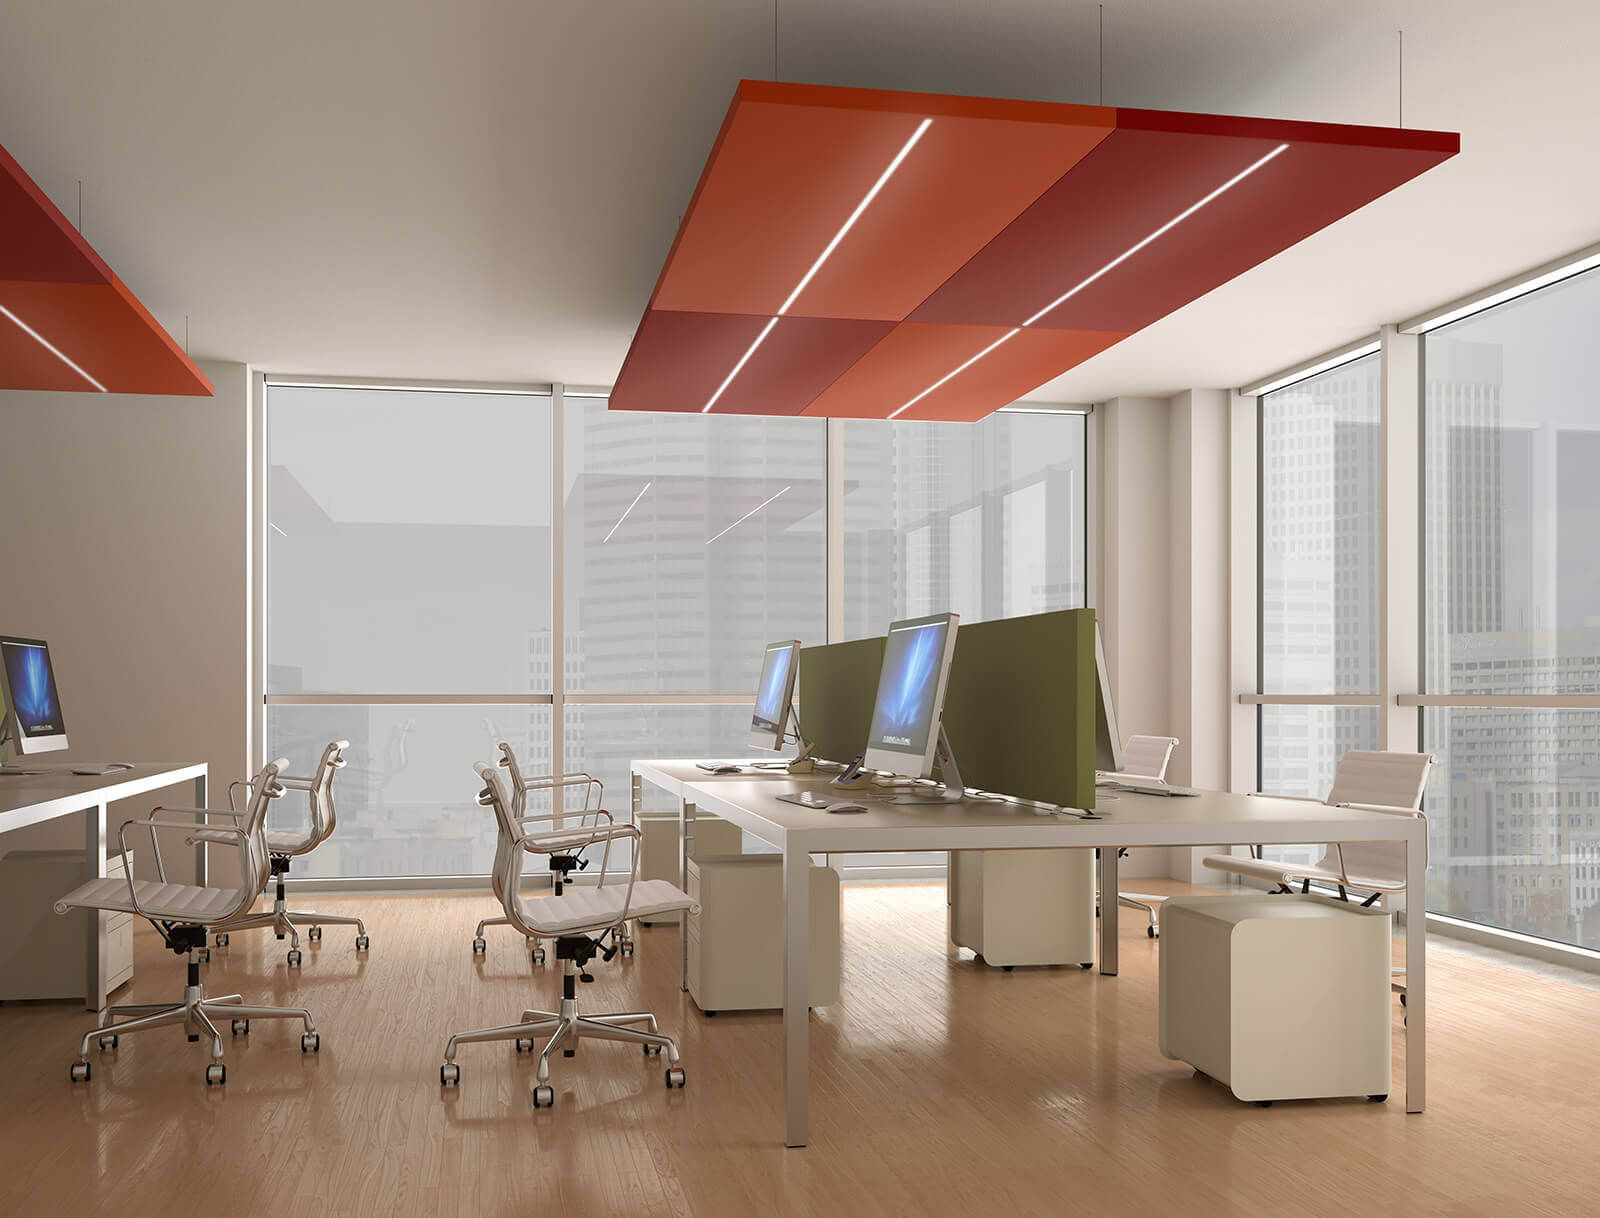 Office Acoustic Comfort, Scriba And Nuvola Sound Absorbing Panels With Led  Light